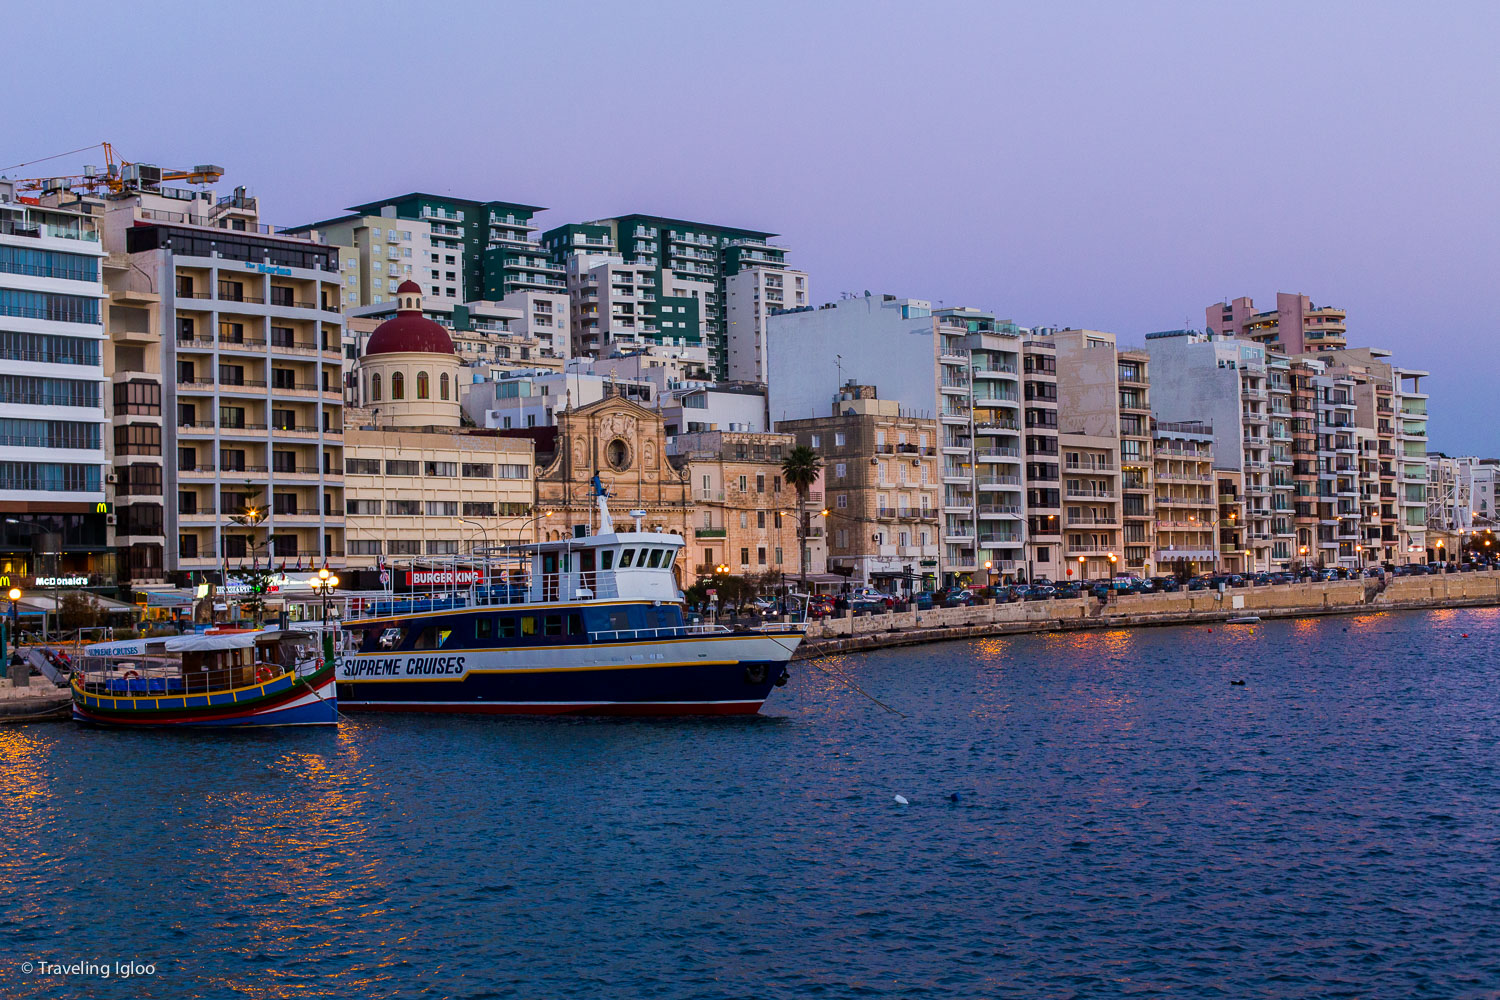 This is the waterfront area of Sliema